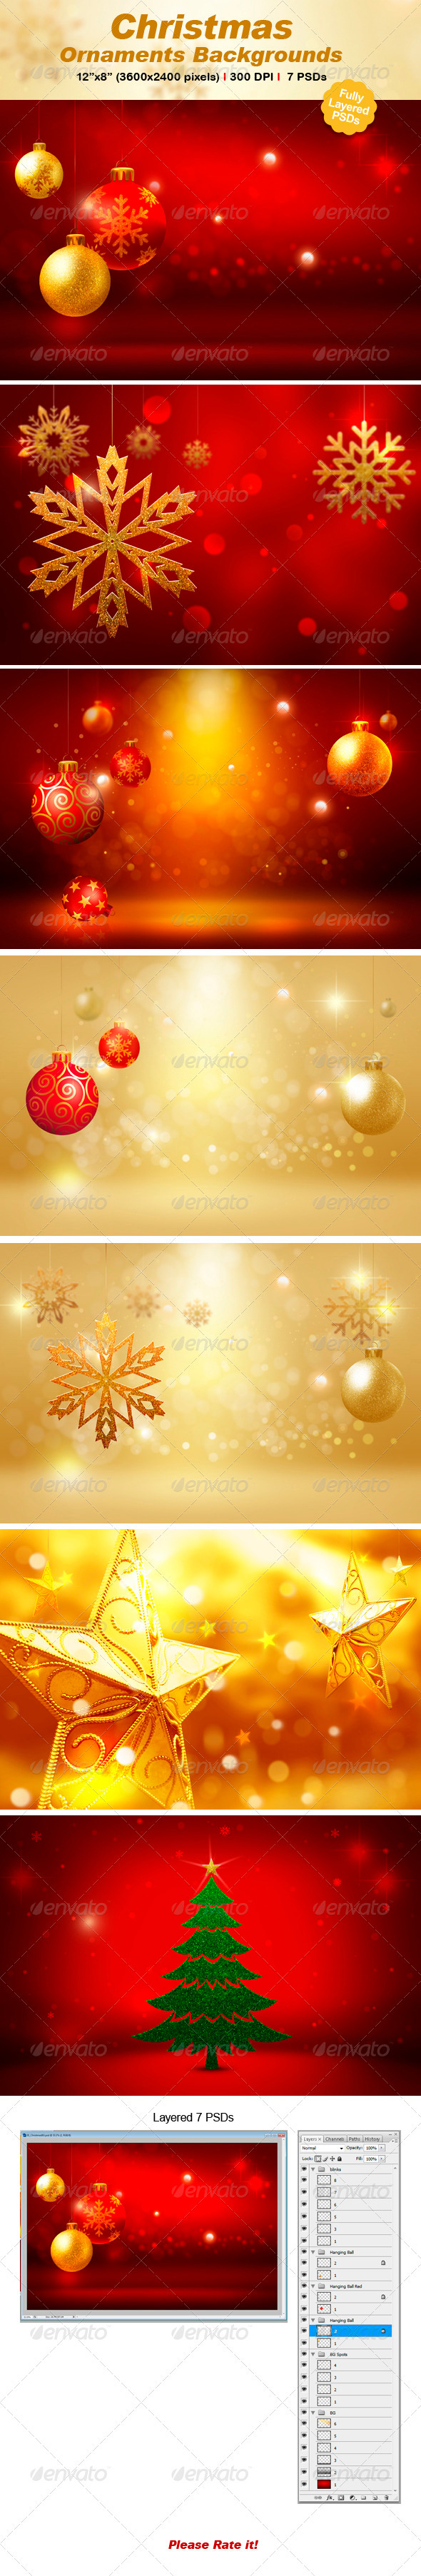 Christmas Ornament Backgrounds - Abstract Backgrounds